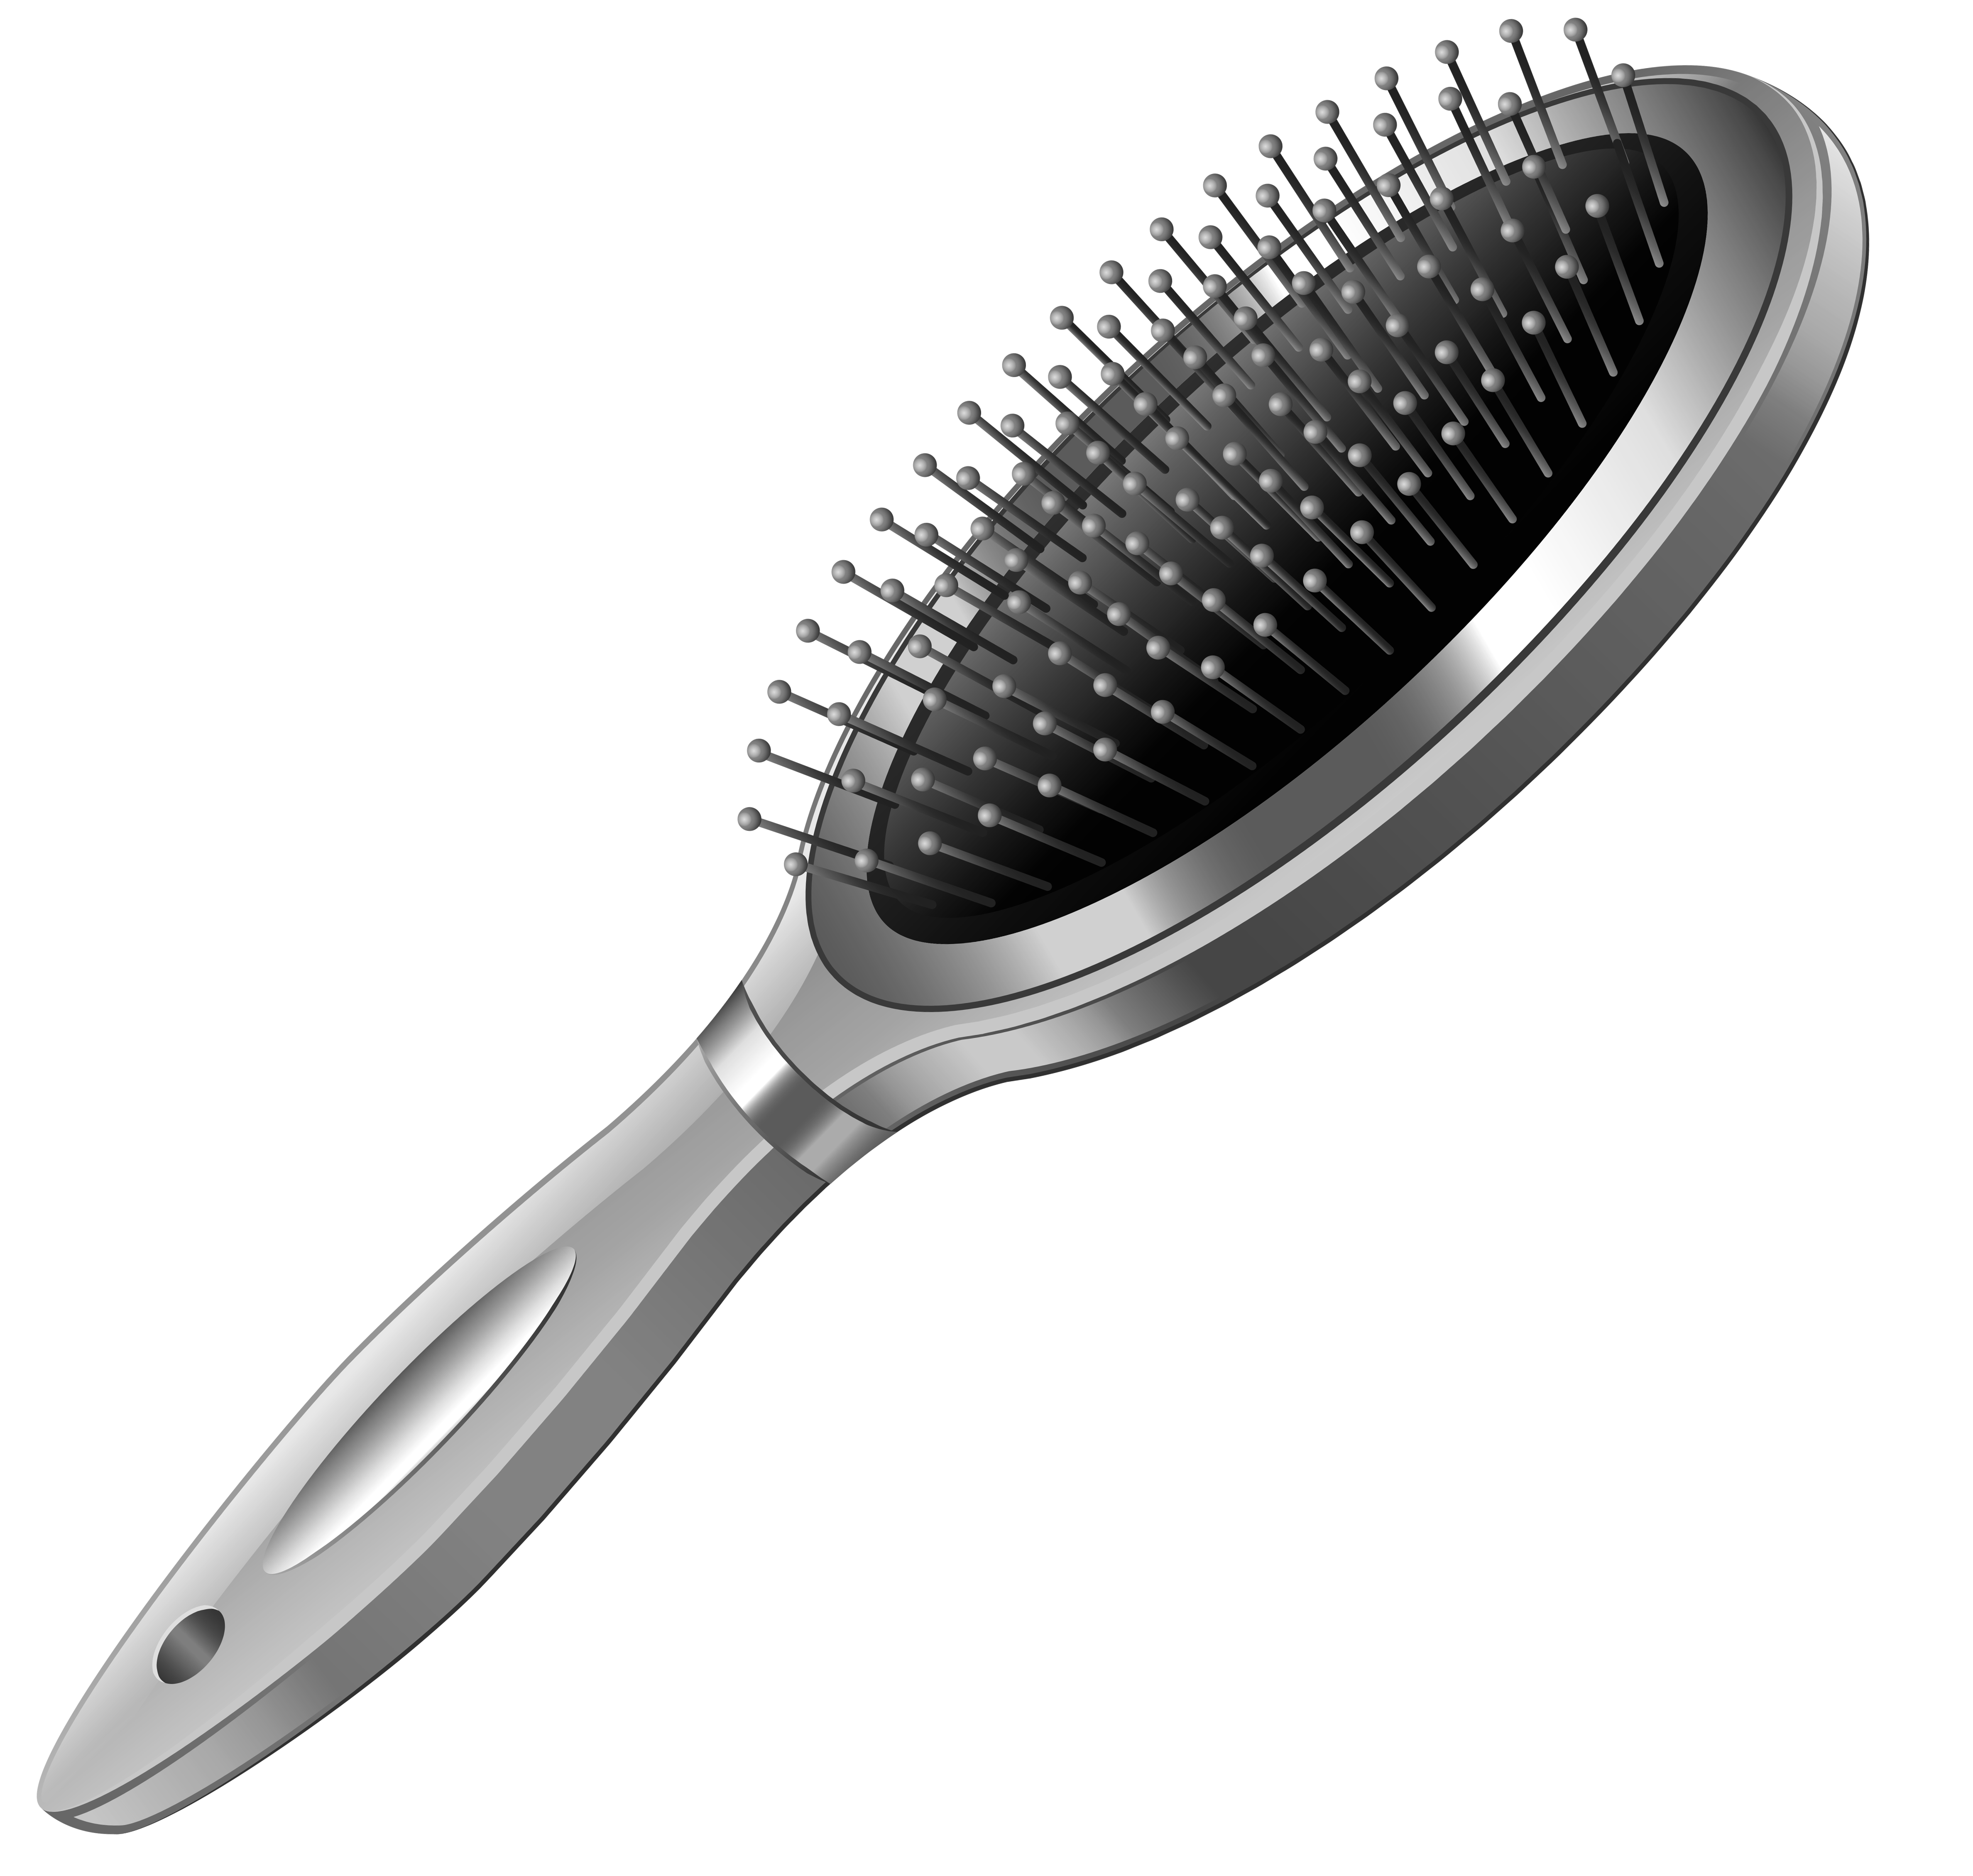 Silver hairbrush png picture. Shampoo clipart combclip